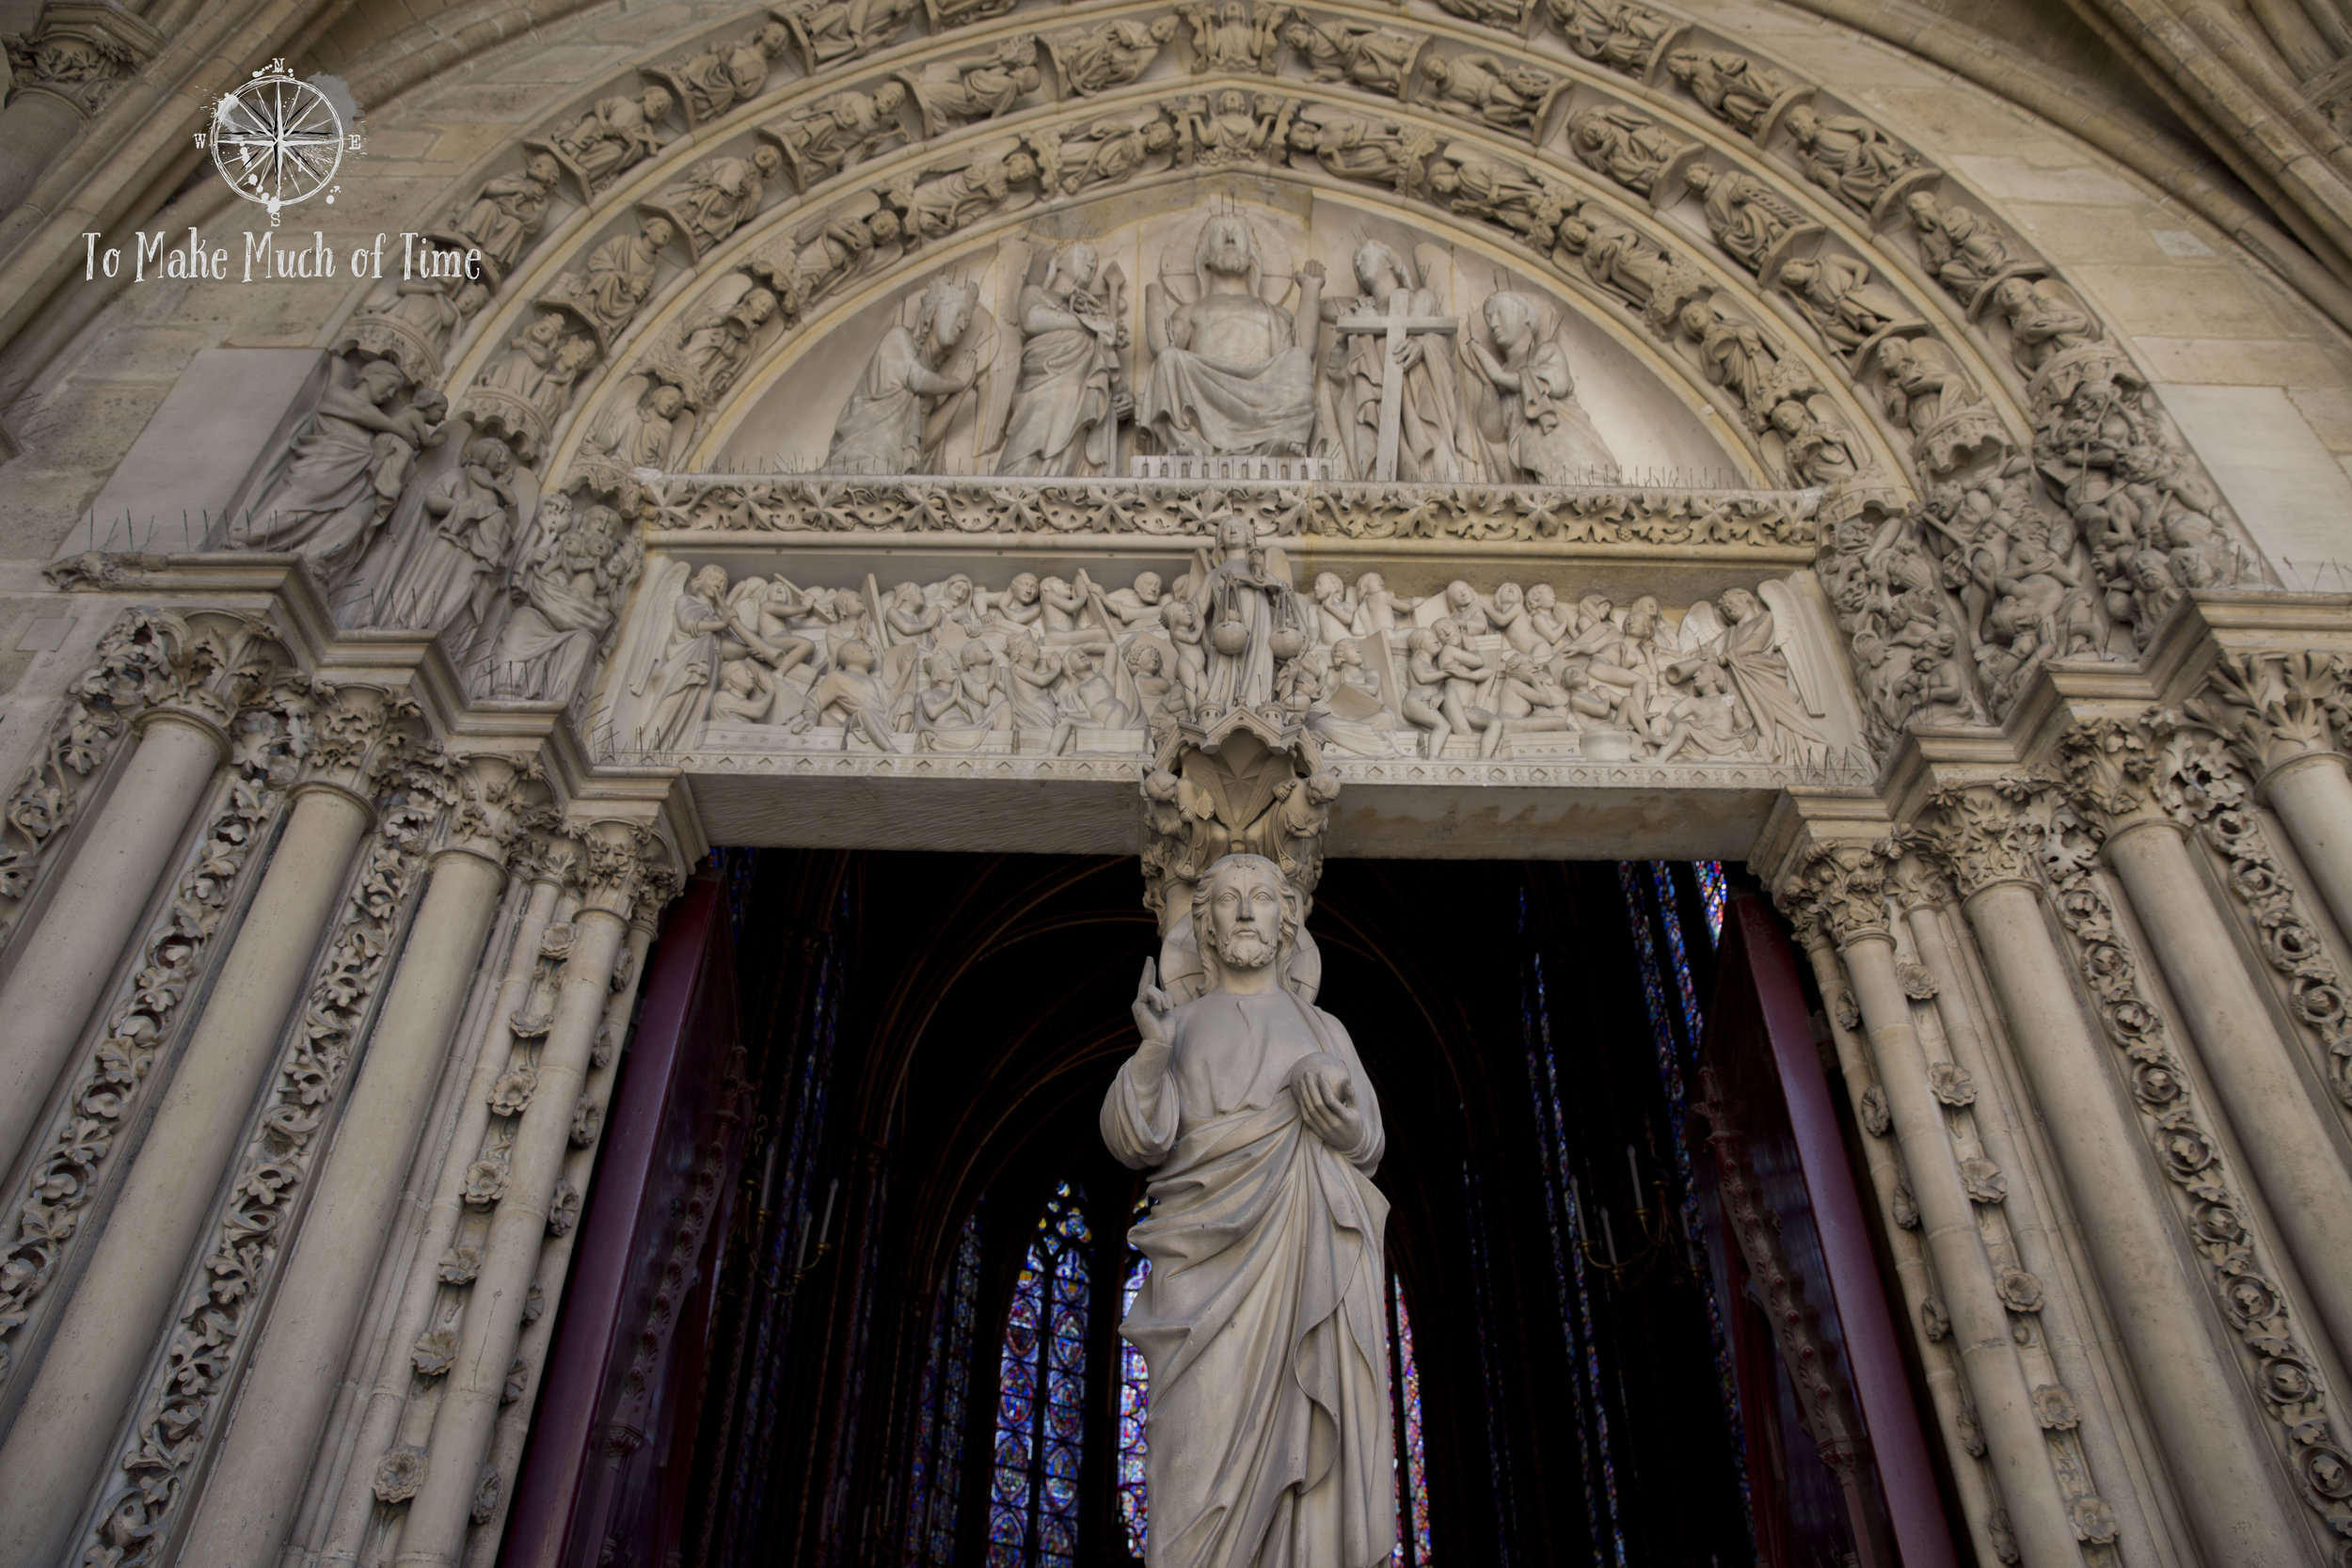 The details of this doorway are impressive.